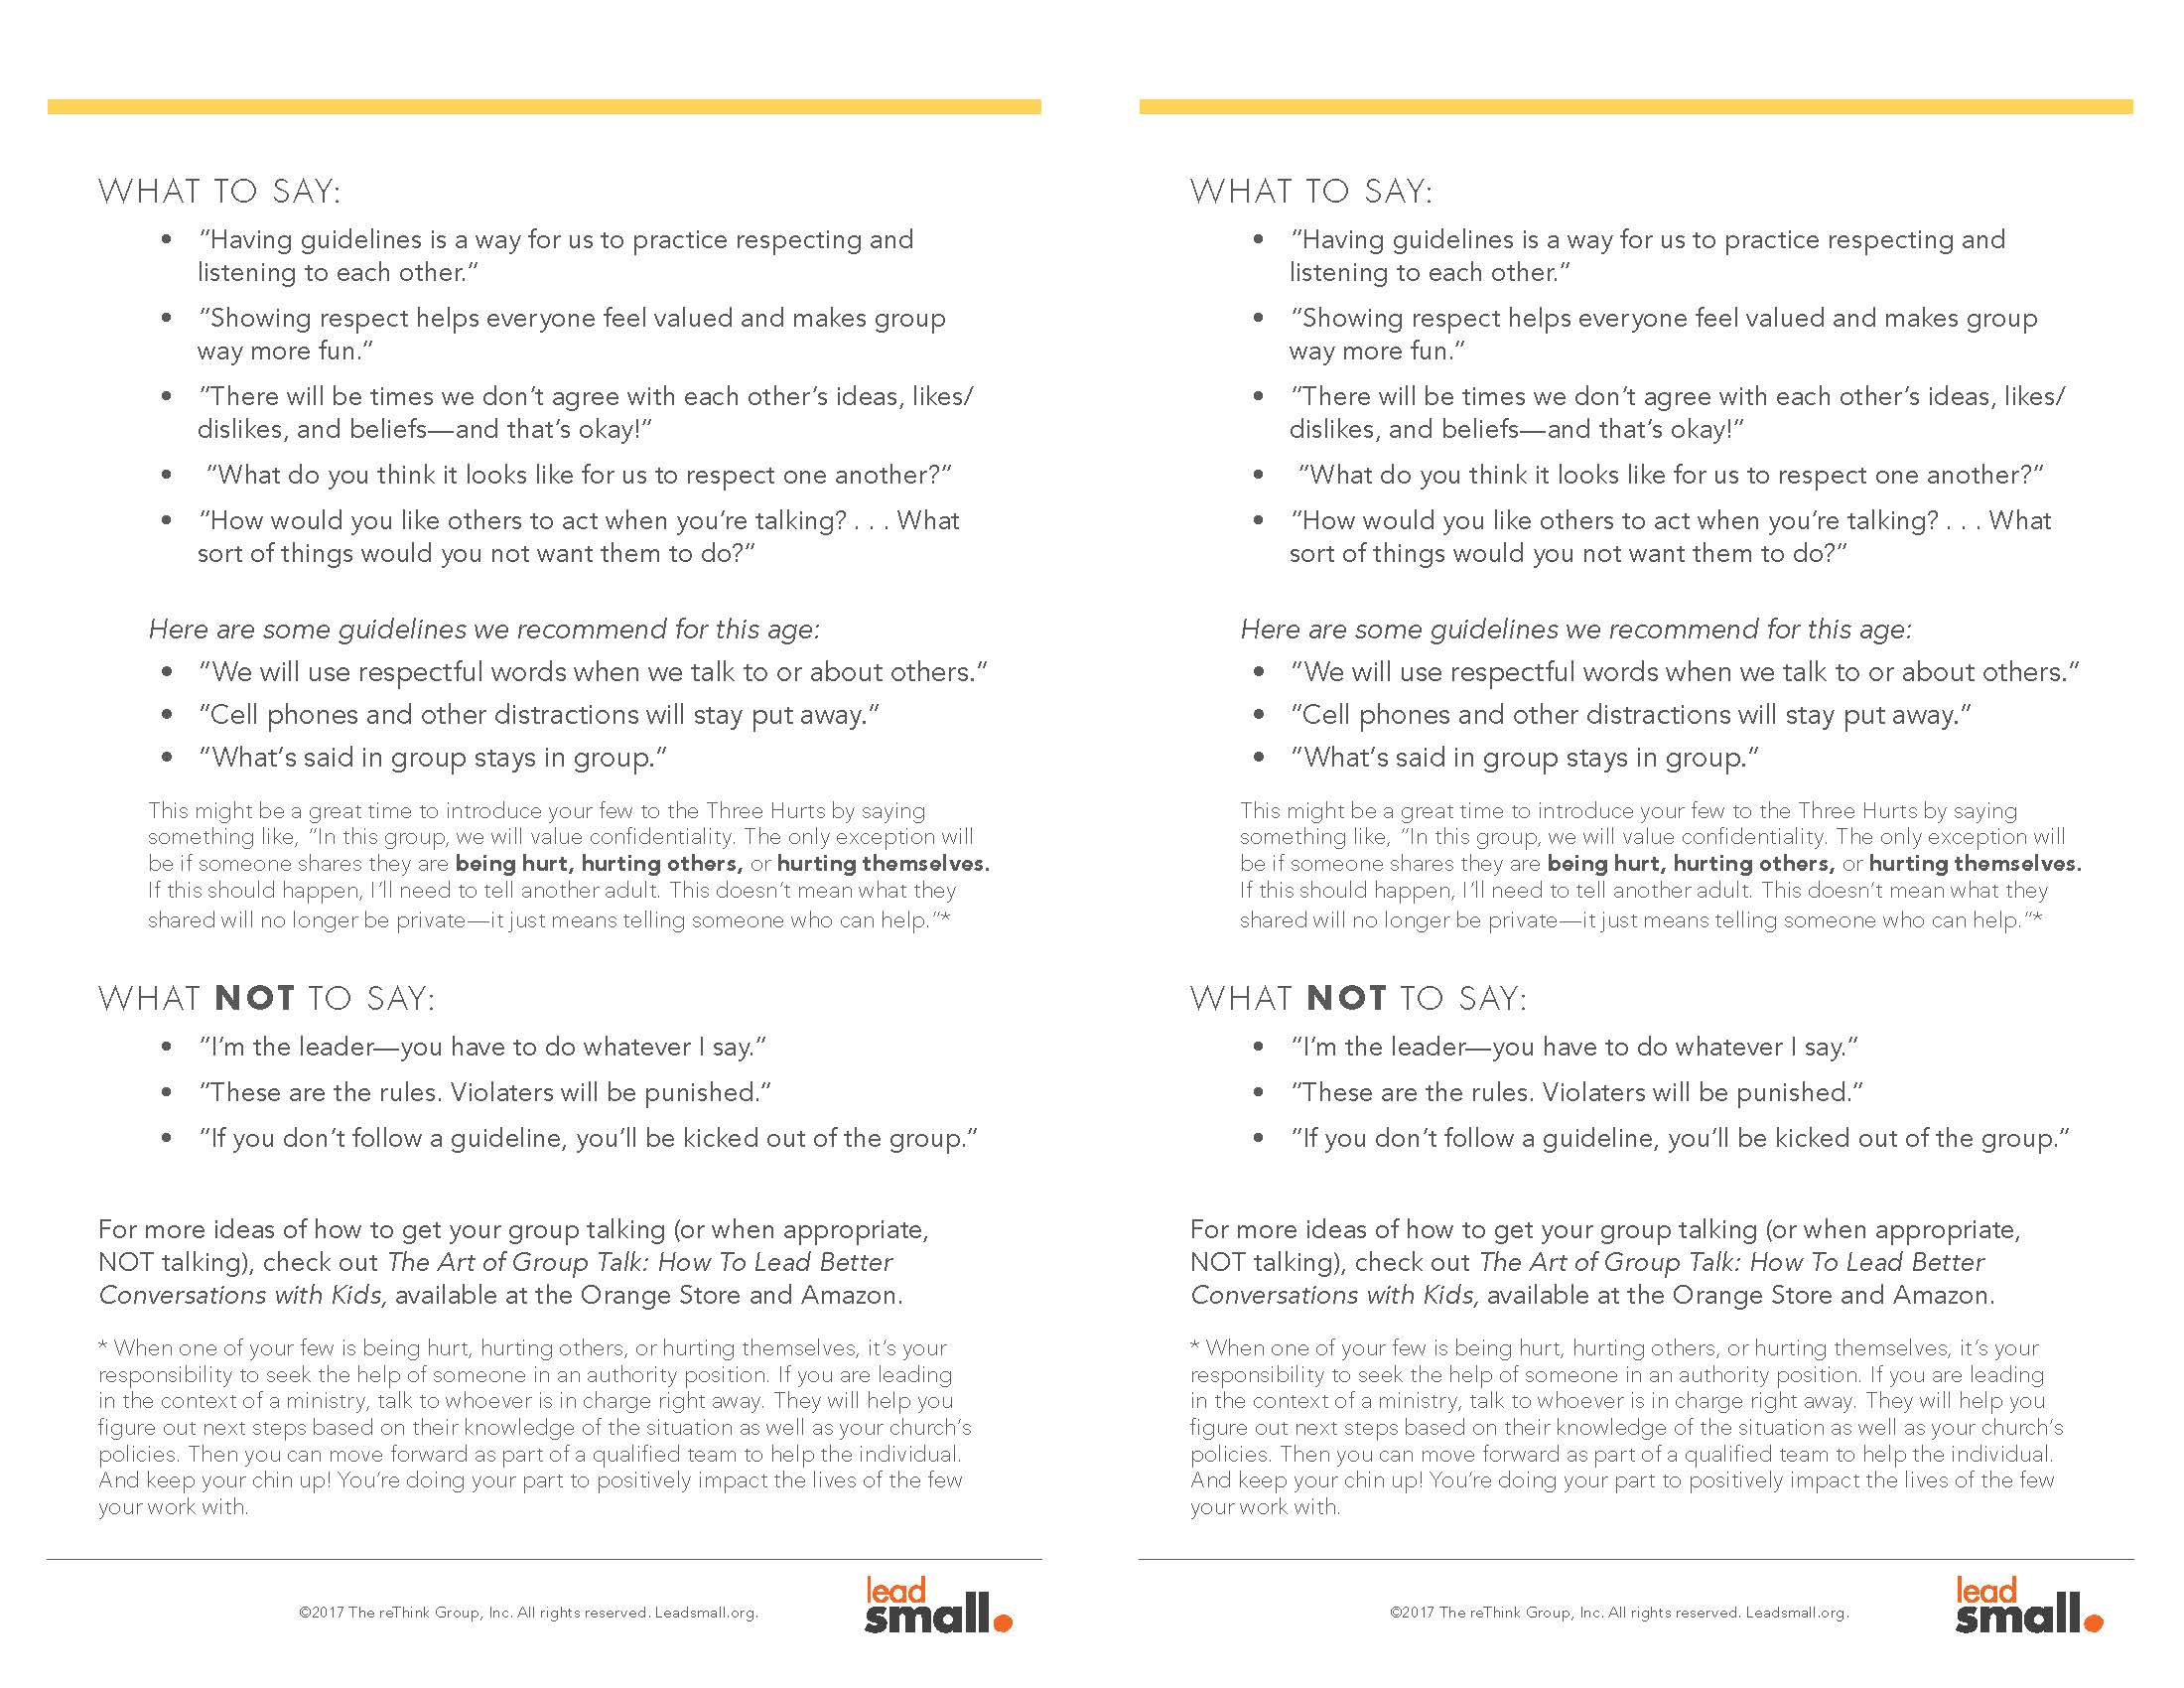 Group Guidelines Page 2